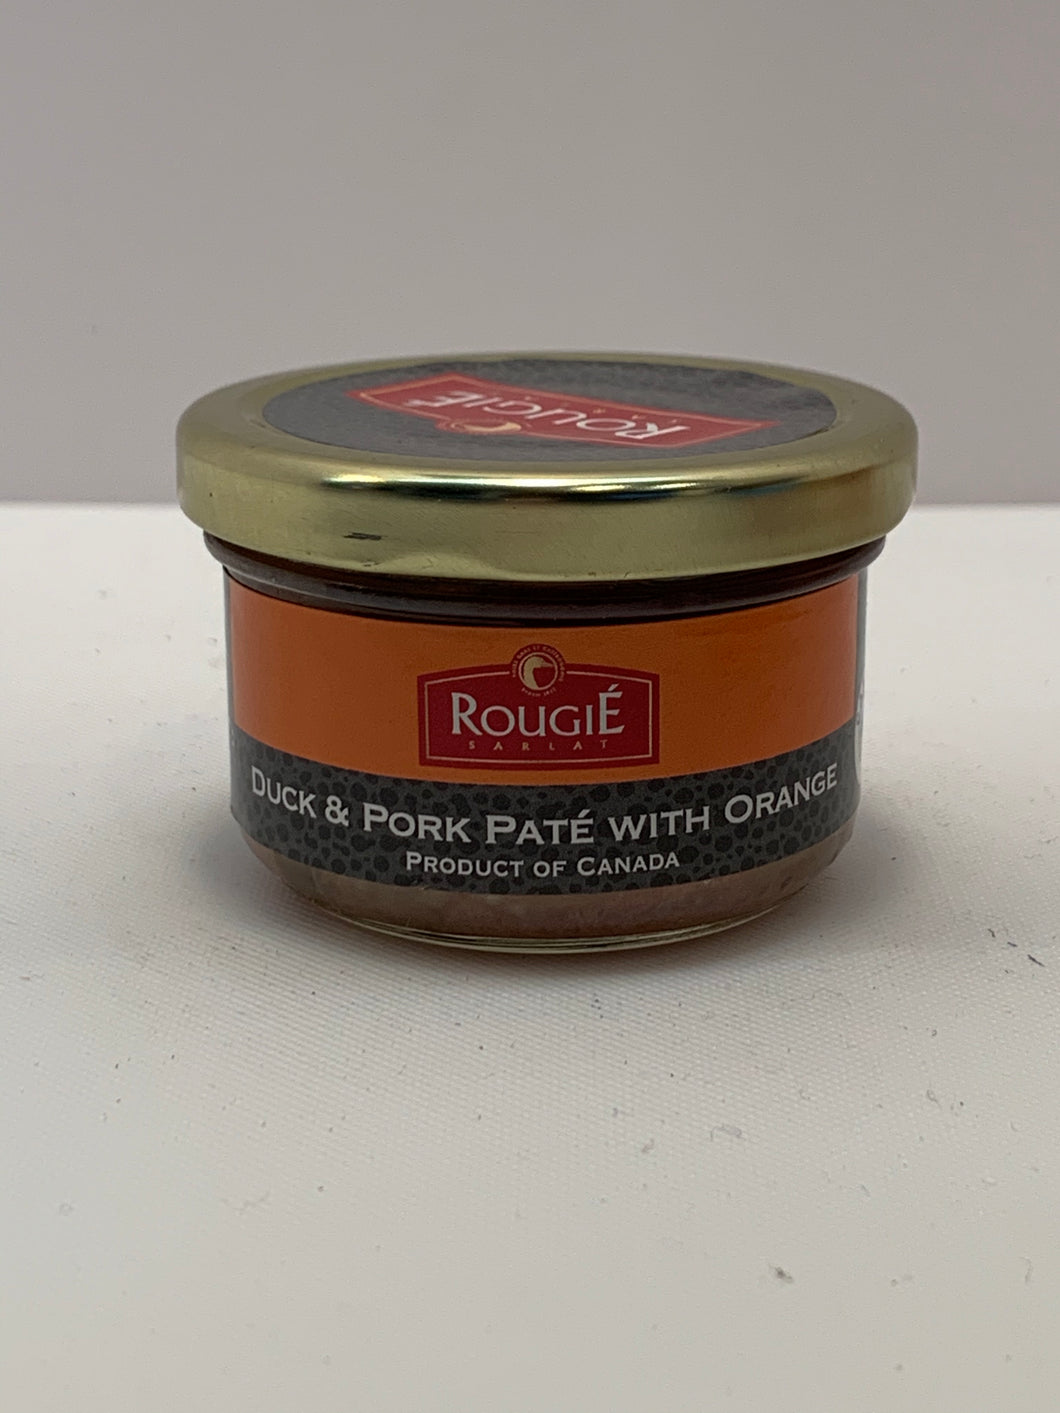 Rougie Duck and Pork Pate With Orange